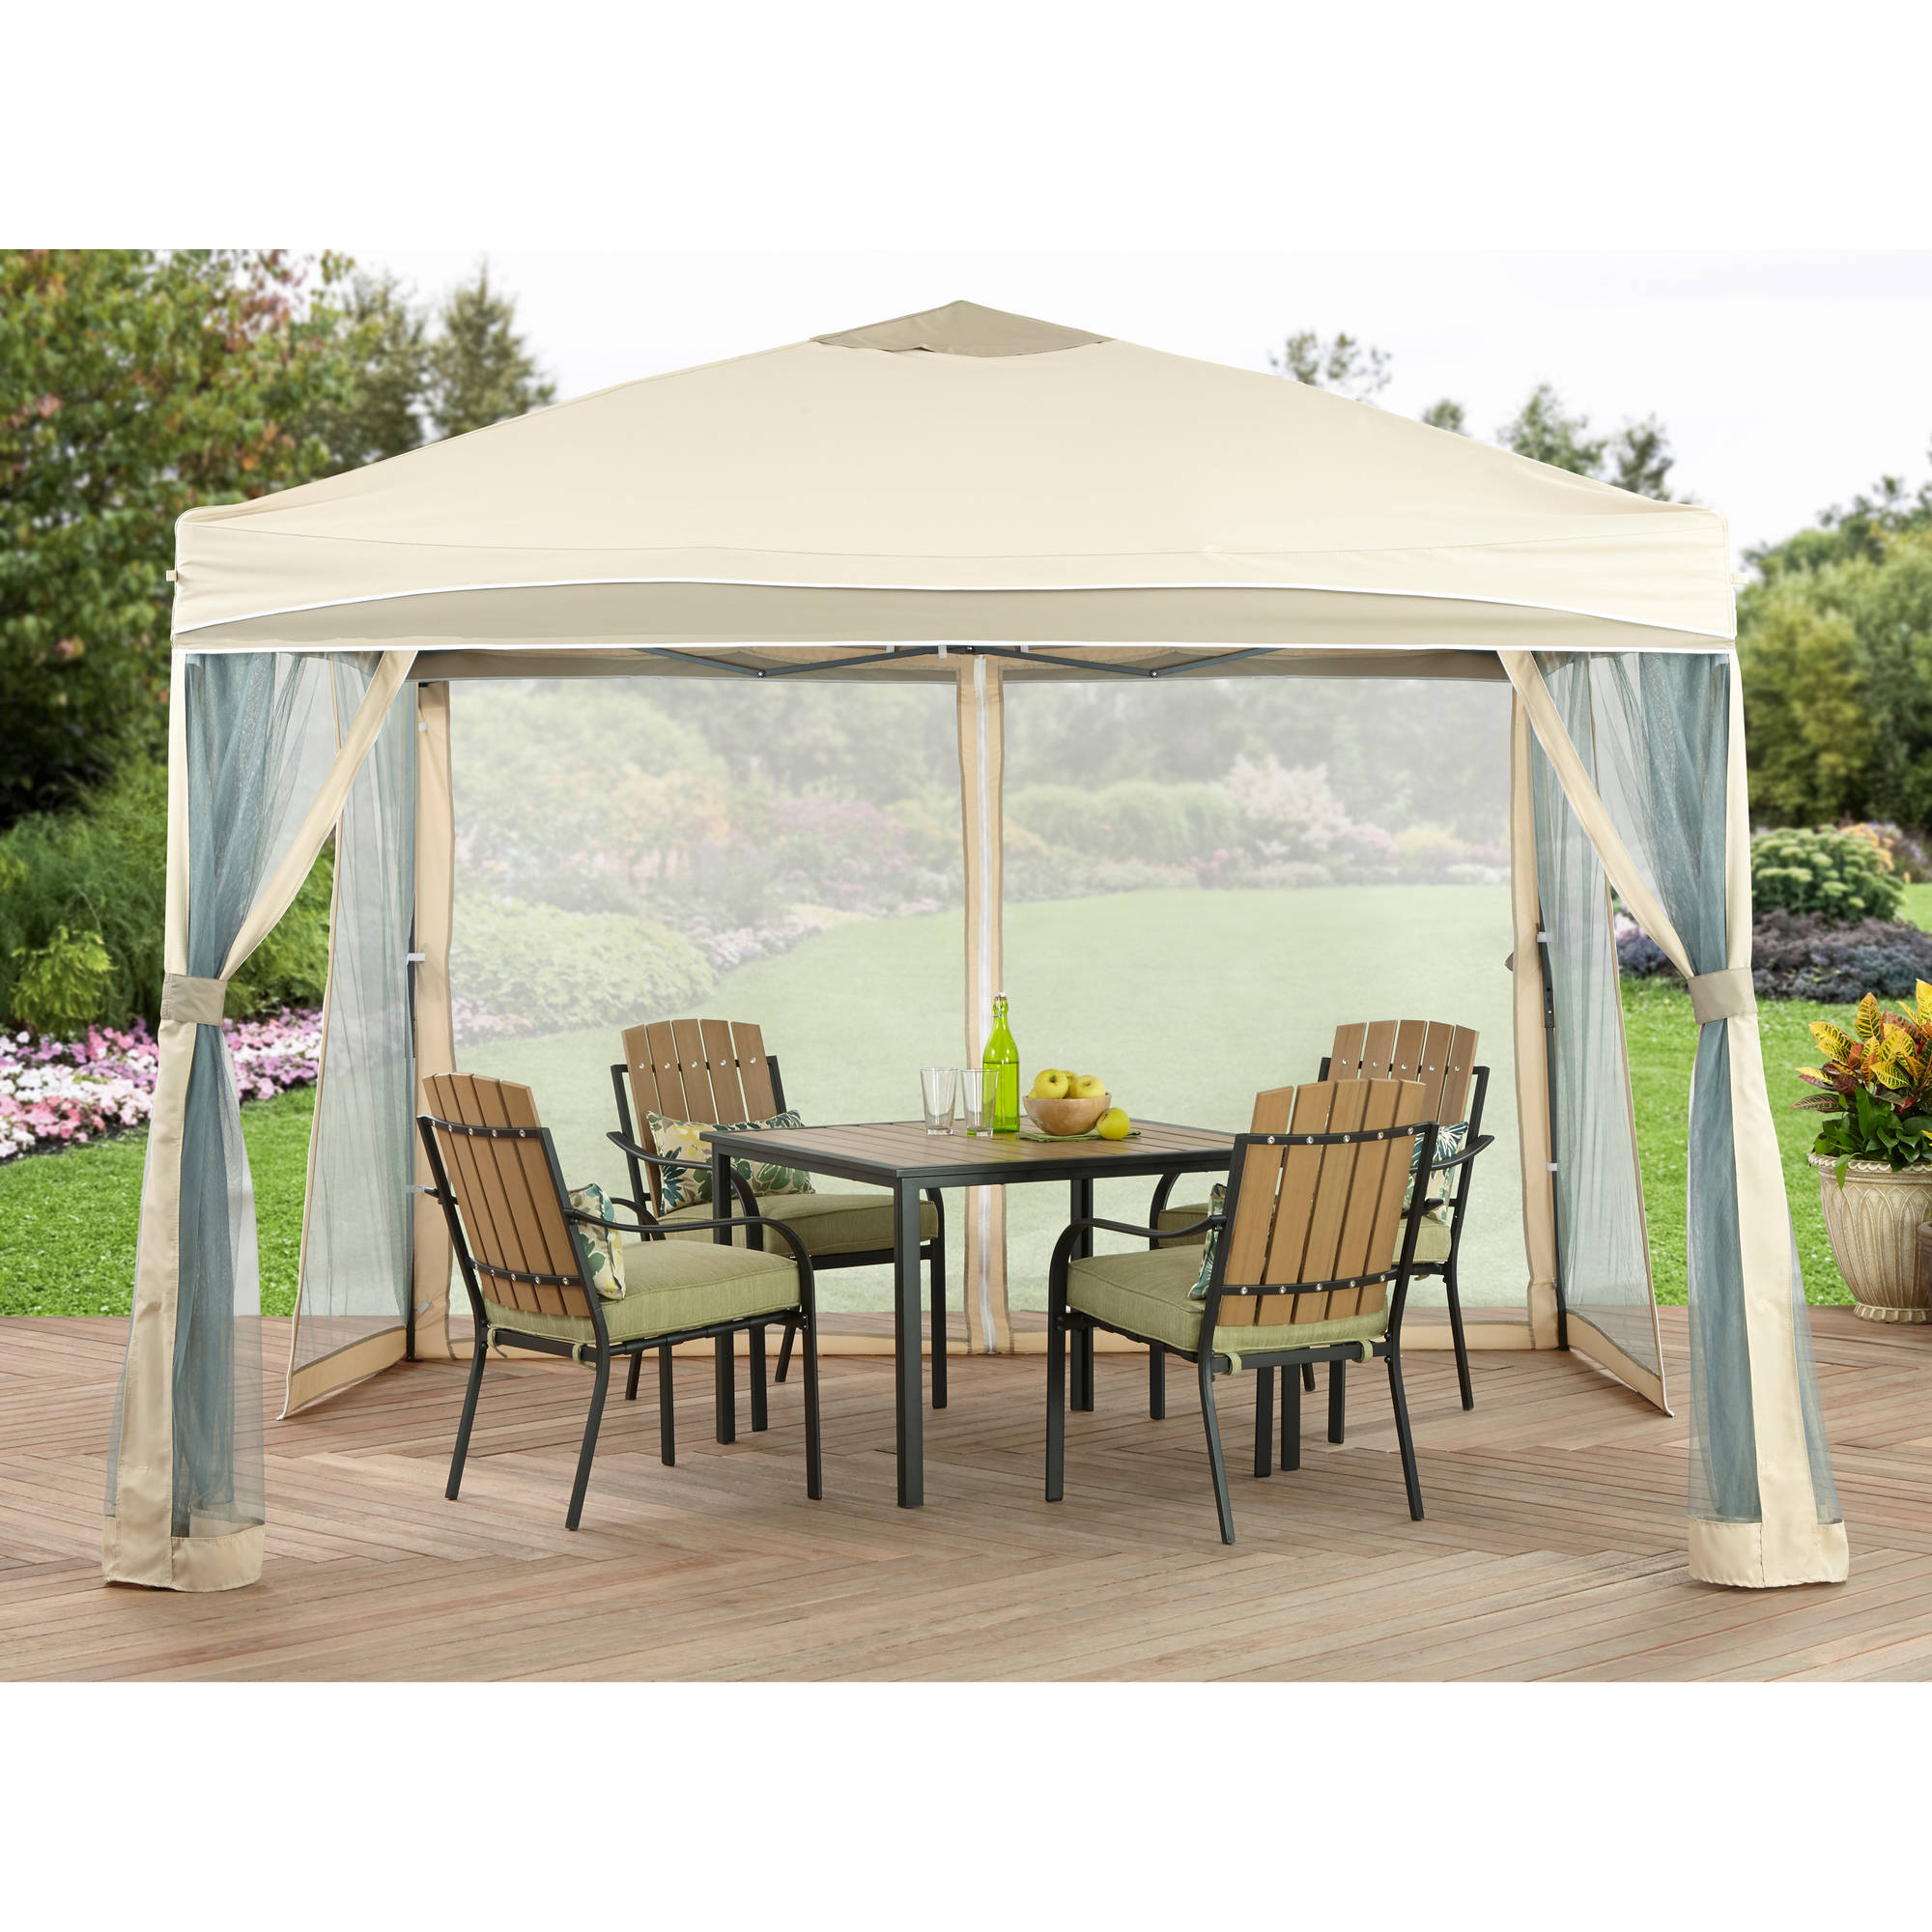 Gazebo Screen Tent | 15 X 20 Gazebo | Screened Gazebo